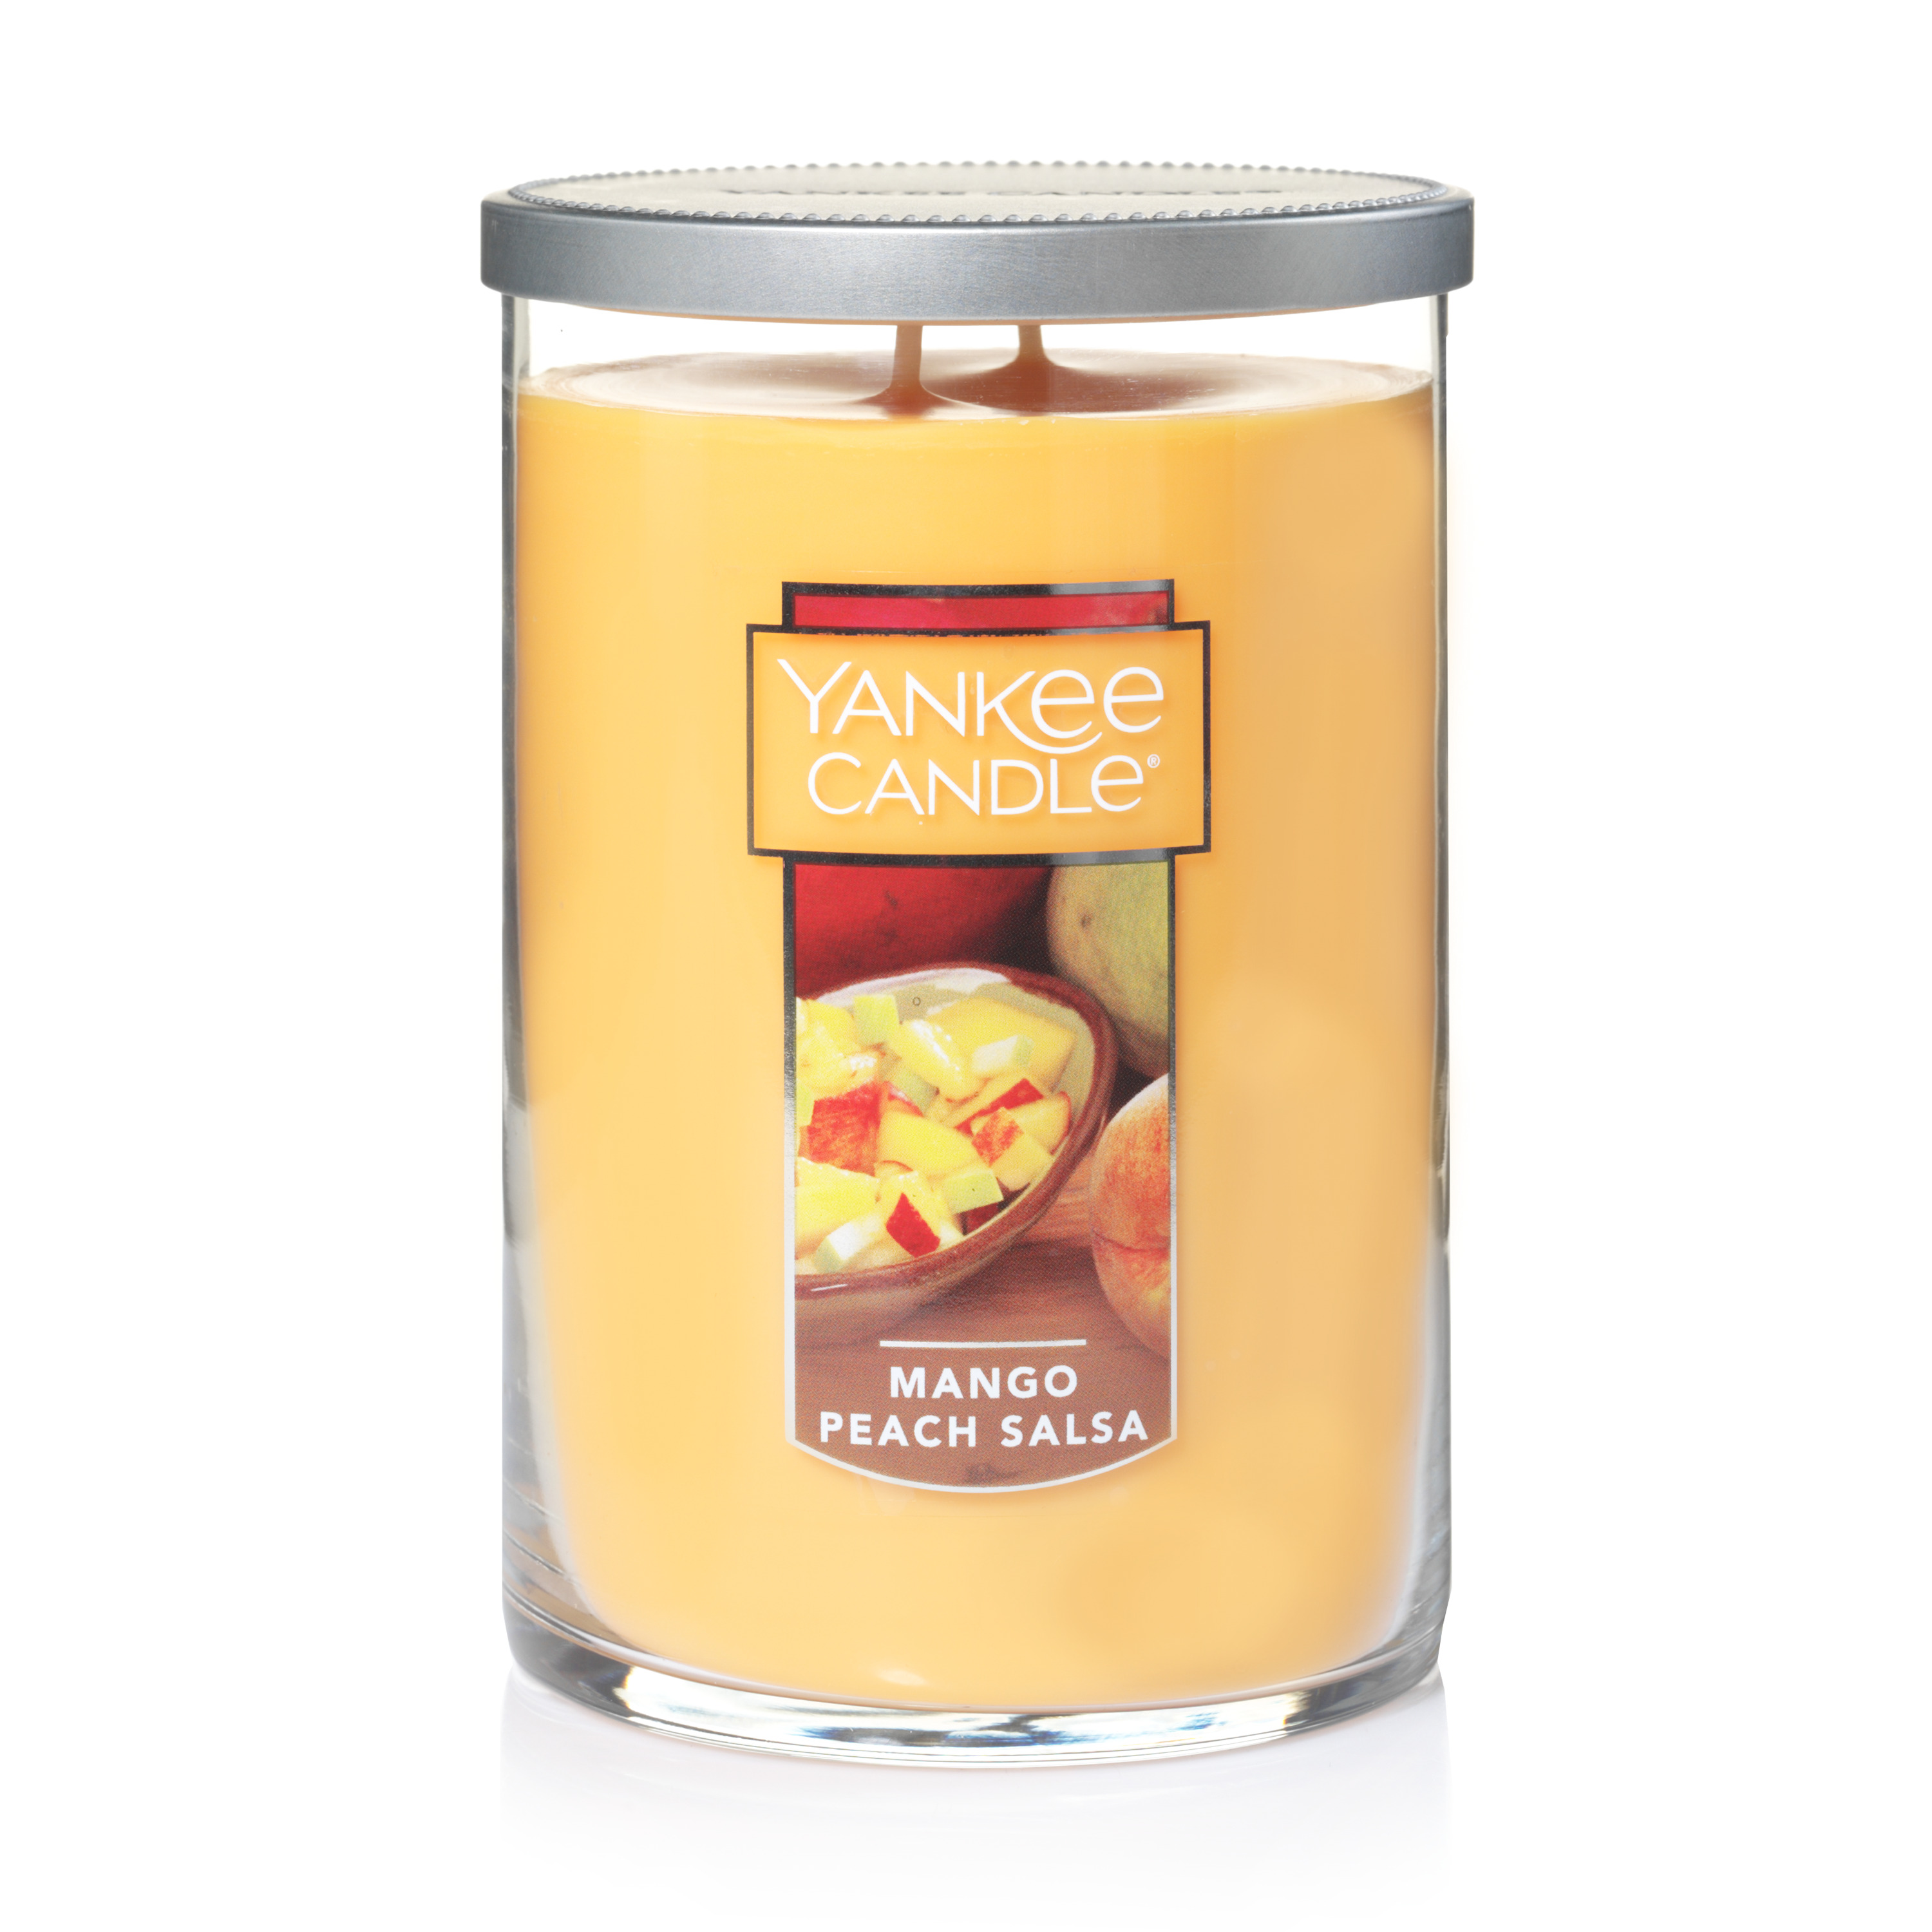 Yankee Candle Large 2-Wick Tumbler Candle, Mango Peach Salsa by Newell Brands